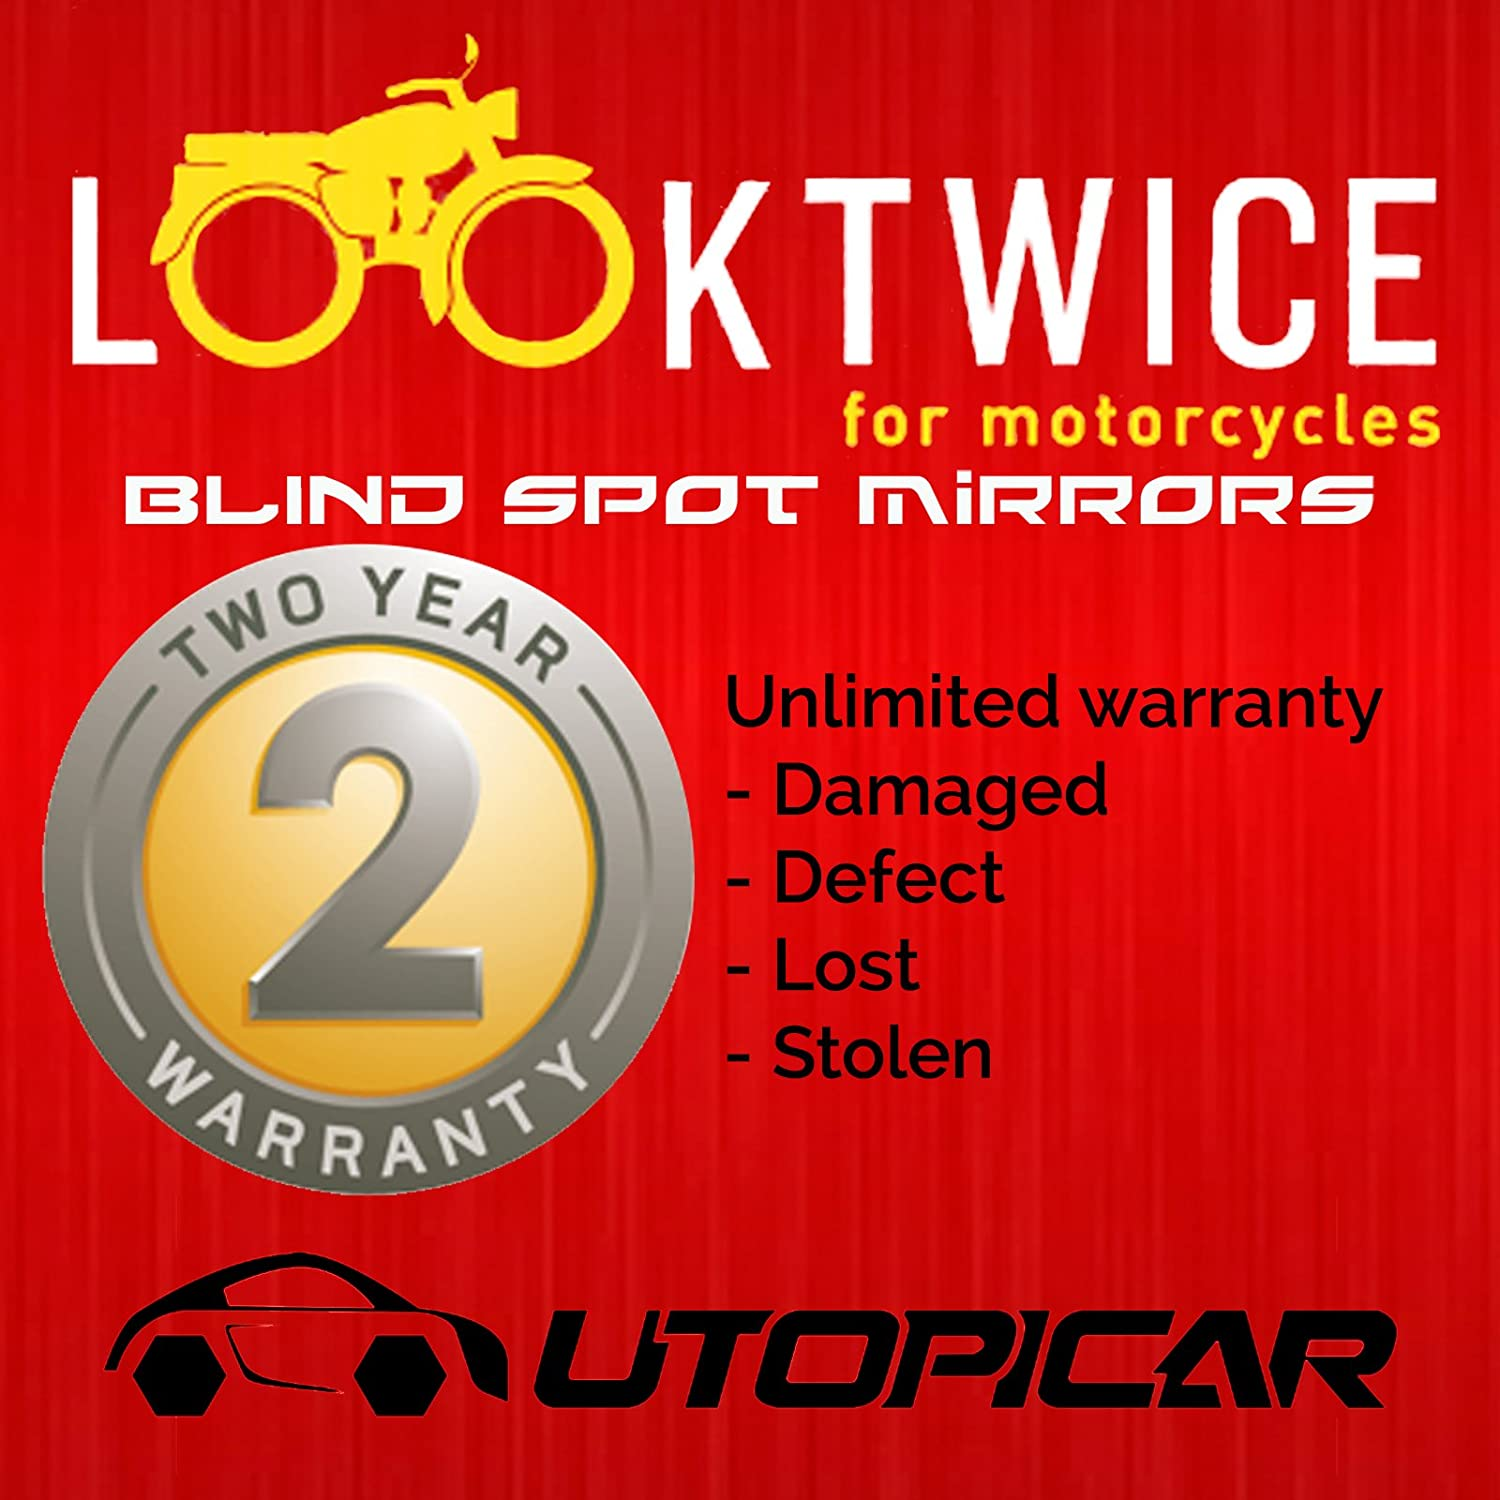 frameless, stick-on design 2 pack Blind Spot Mirrors Unique design Car Mirror for blind side // Door mirrors engineered by Utopicar for larger image and traffic safety Awesome rear view!